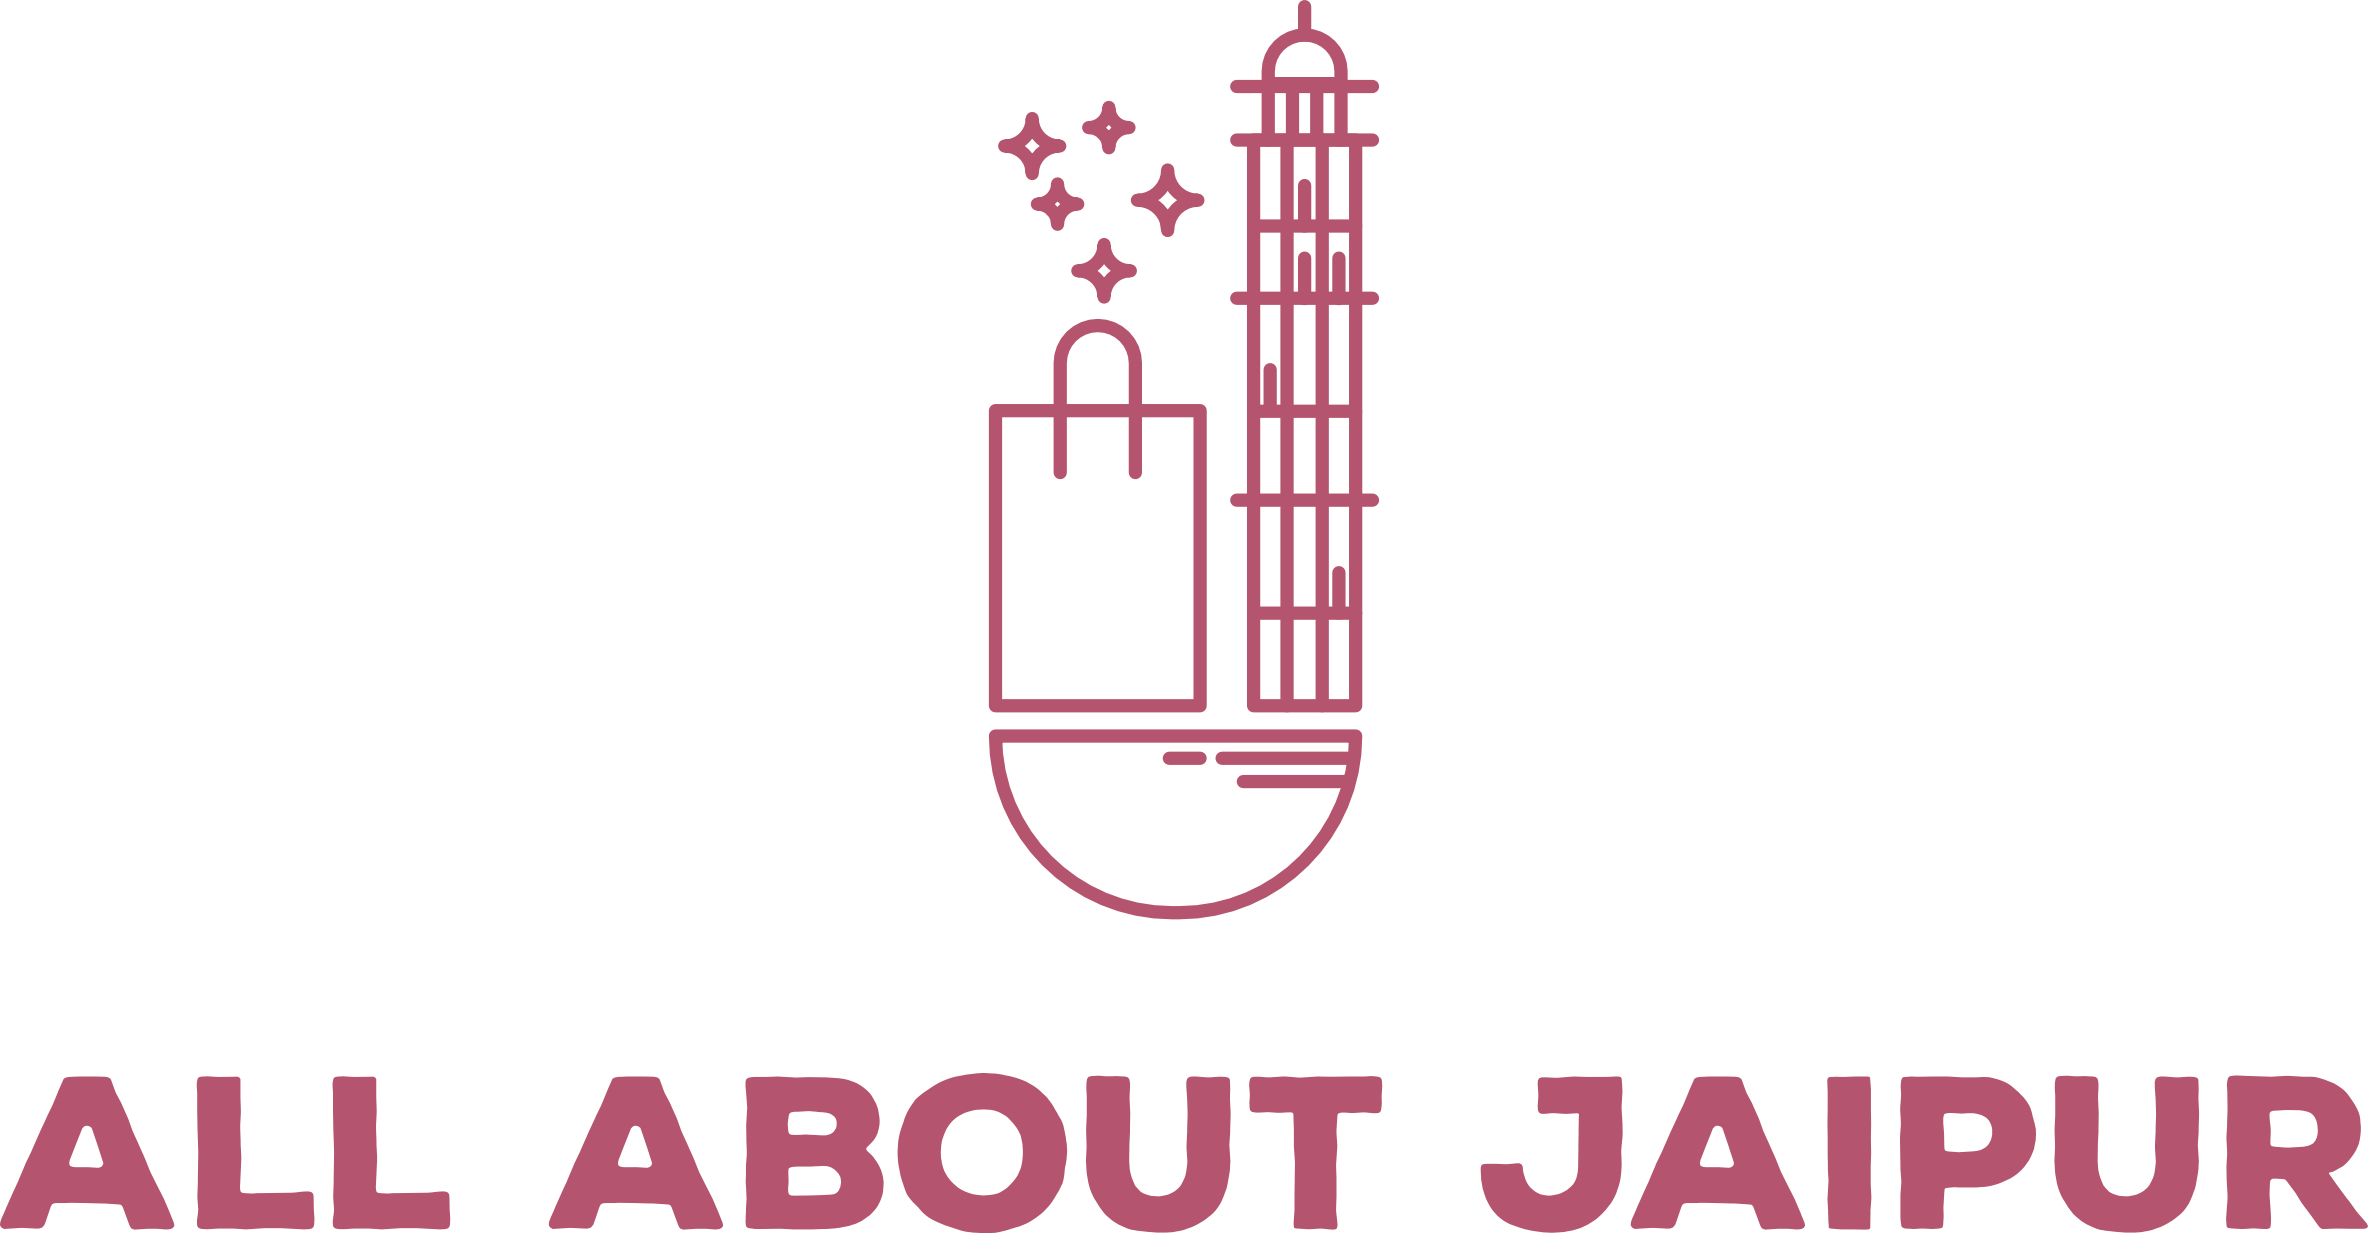 All About Jaipur